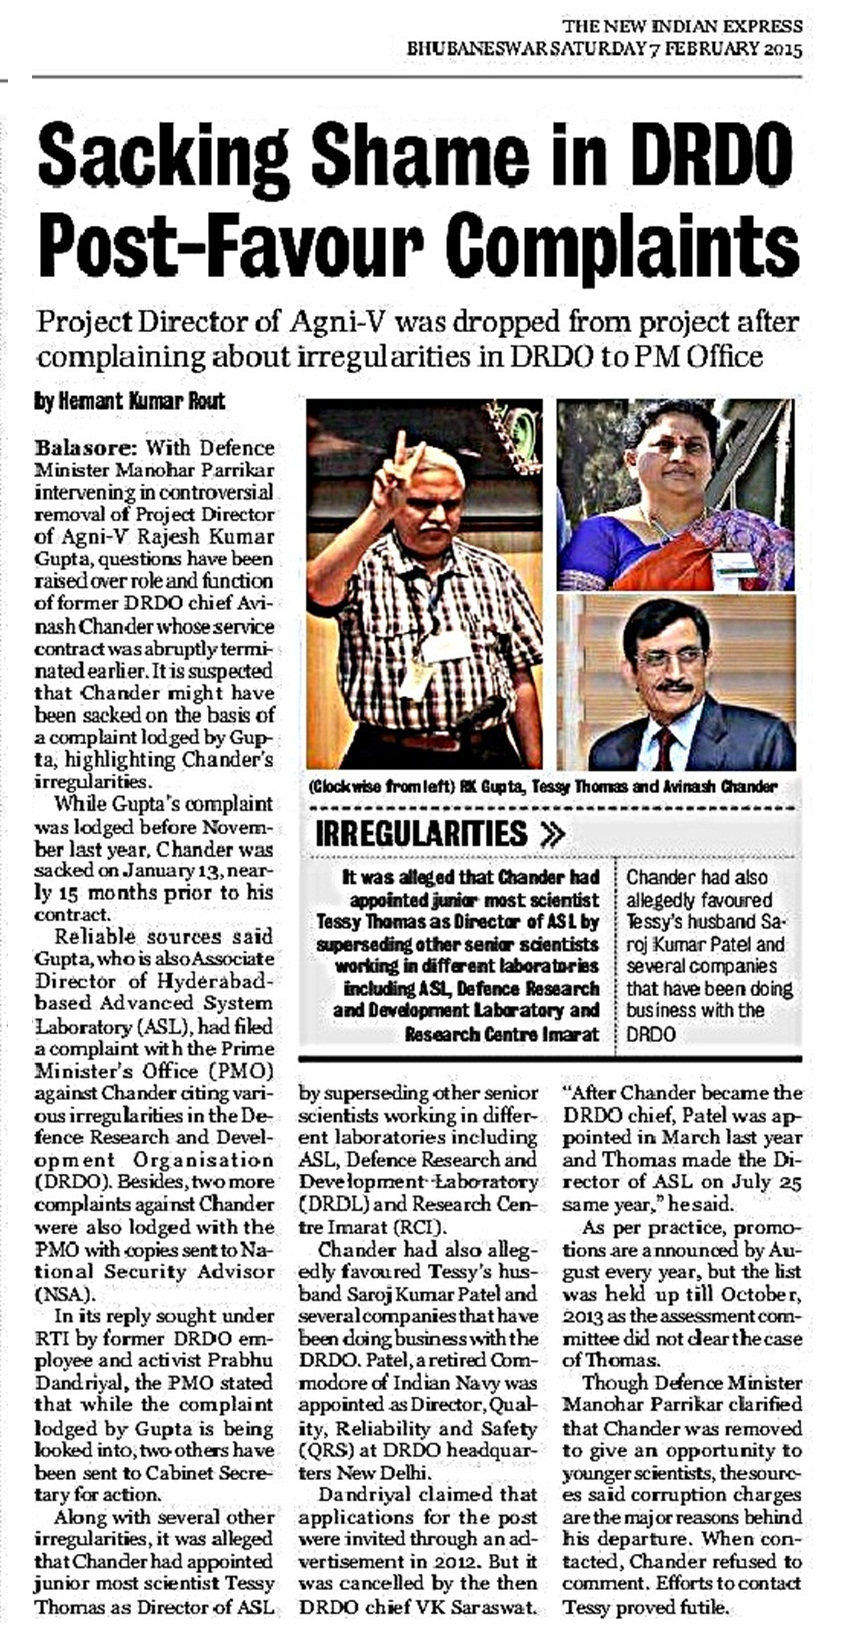 the new indian express 7 feb